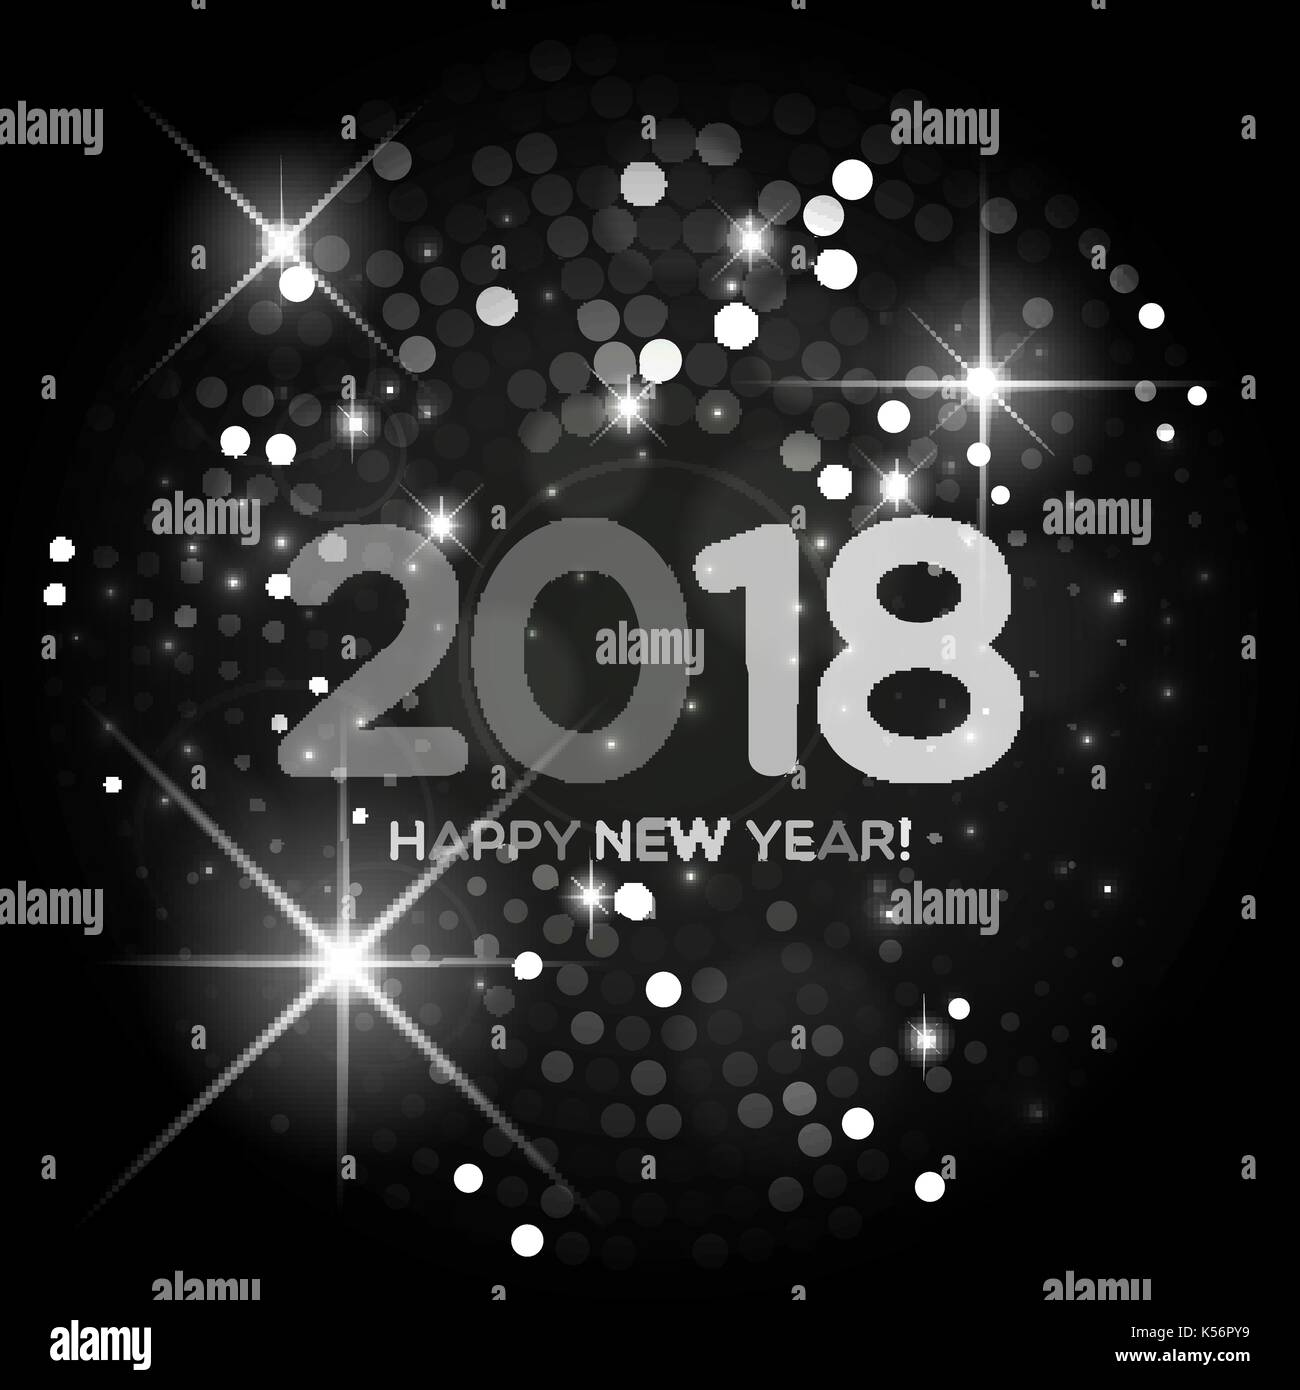 happy new year 2018 abstract black and white light background for your design